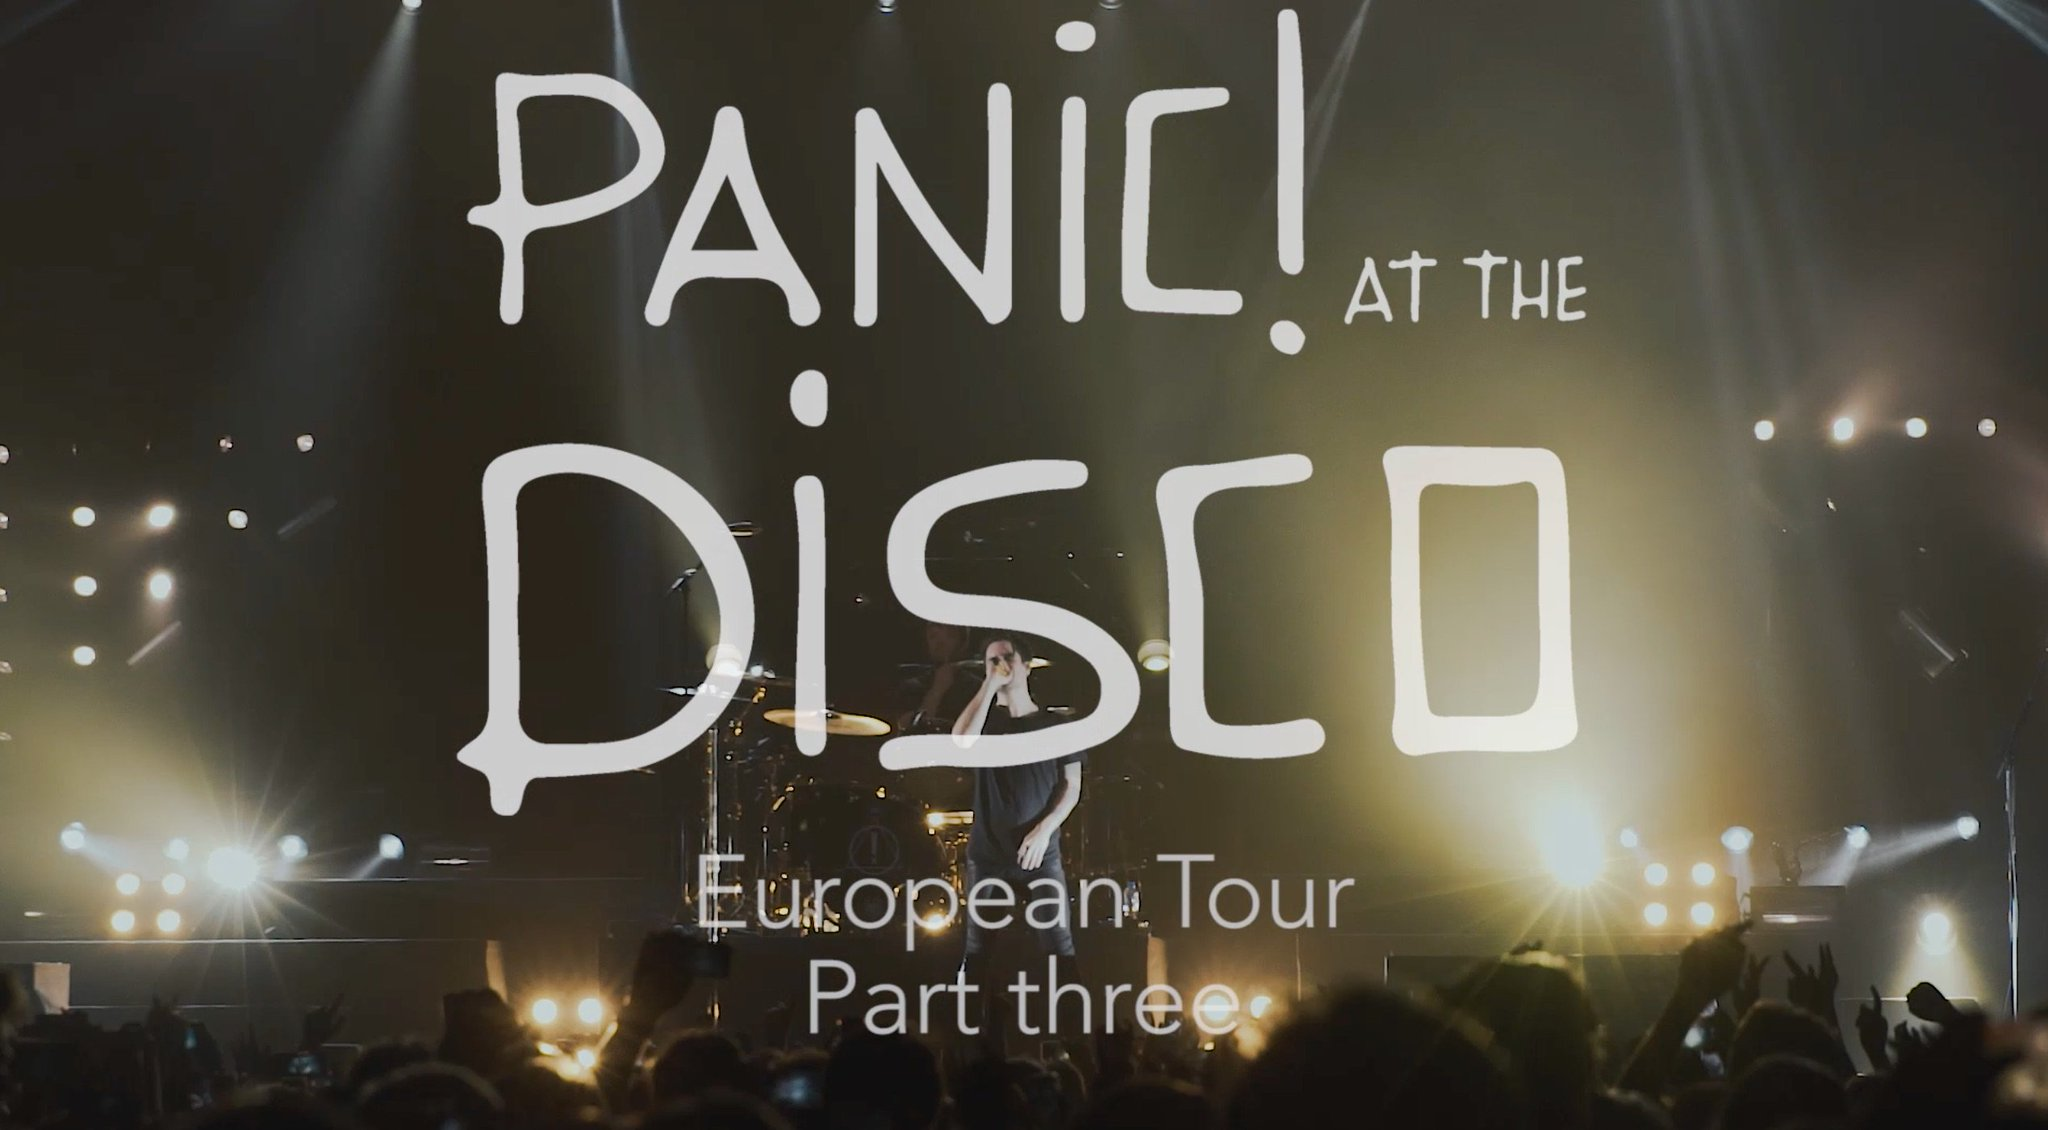 Week 3 of the European tour went off & the recap's coming at you now! https://t.co/p8Sh9lL1b5